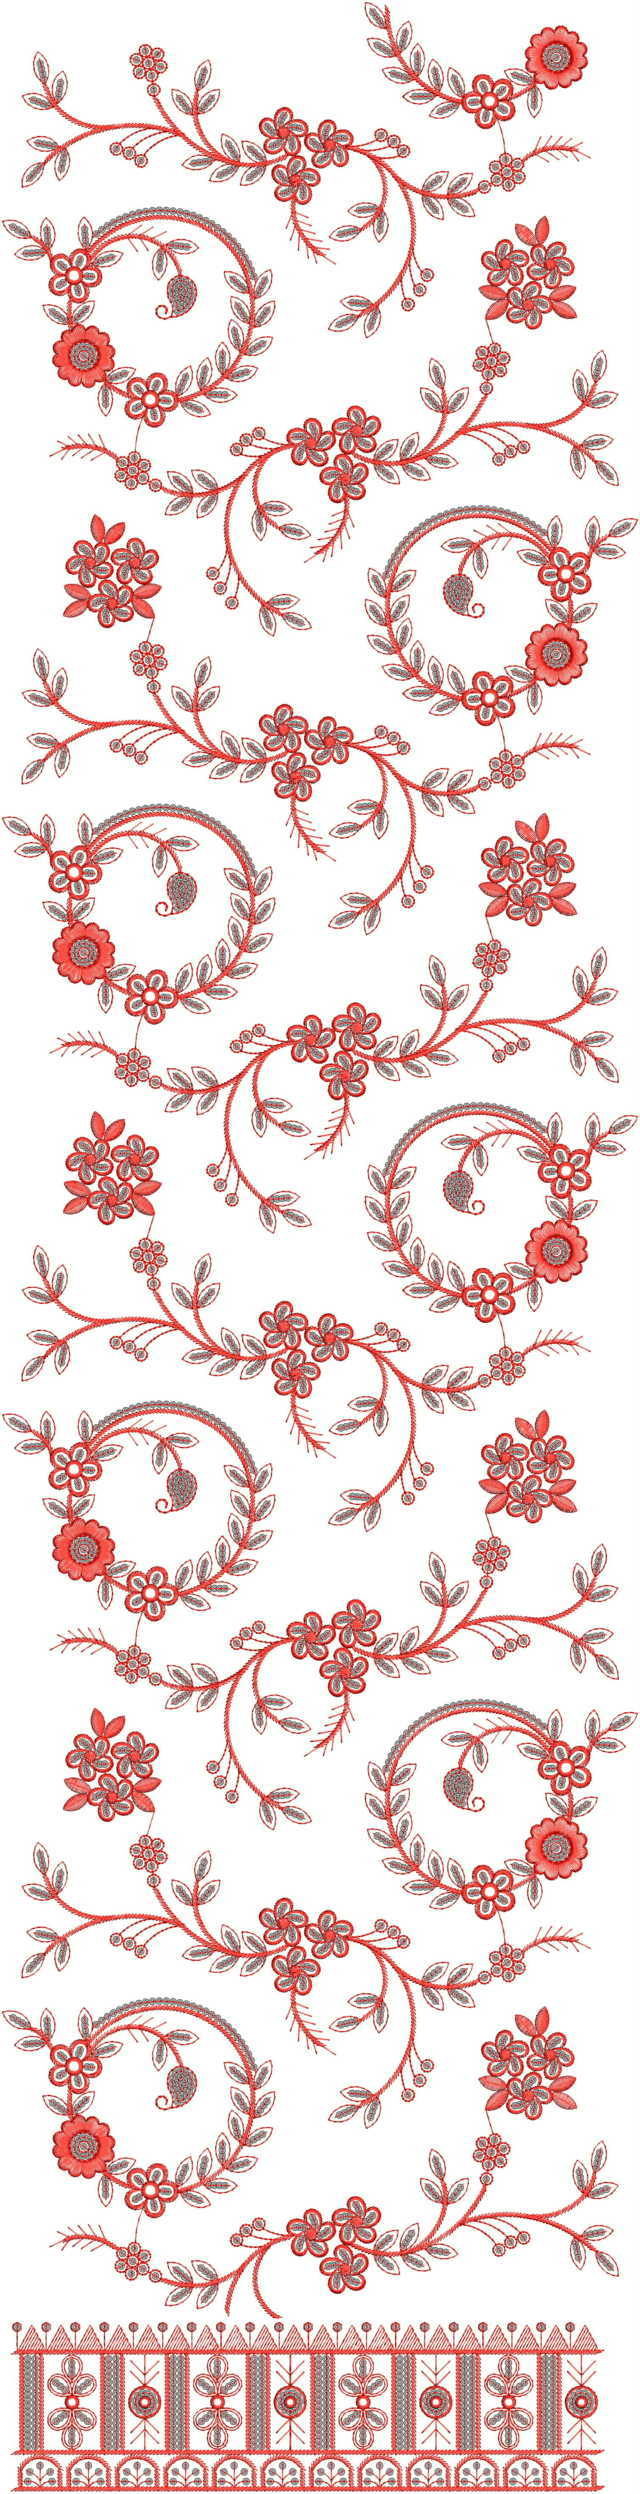 Jaal concept  duptta  embroidery  design